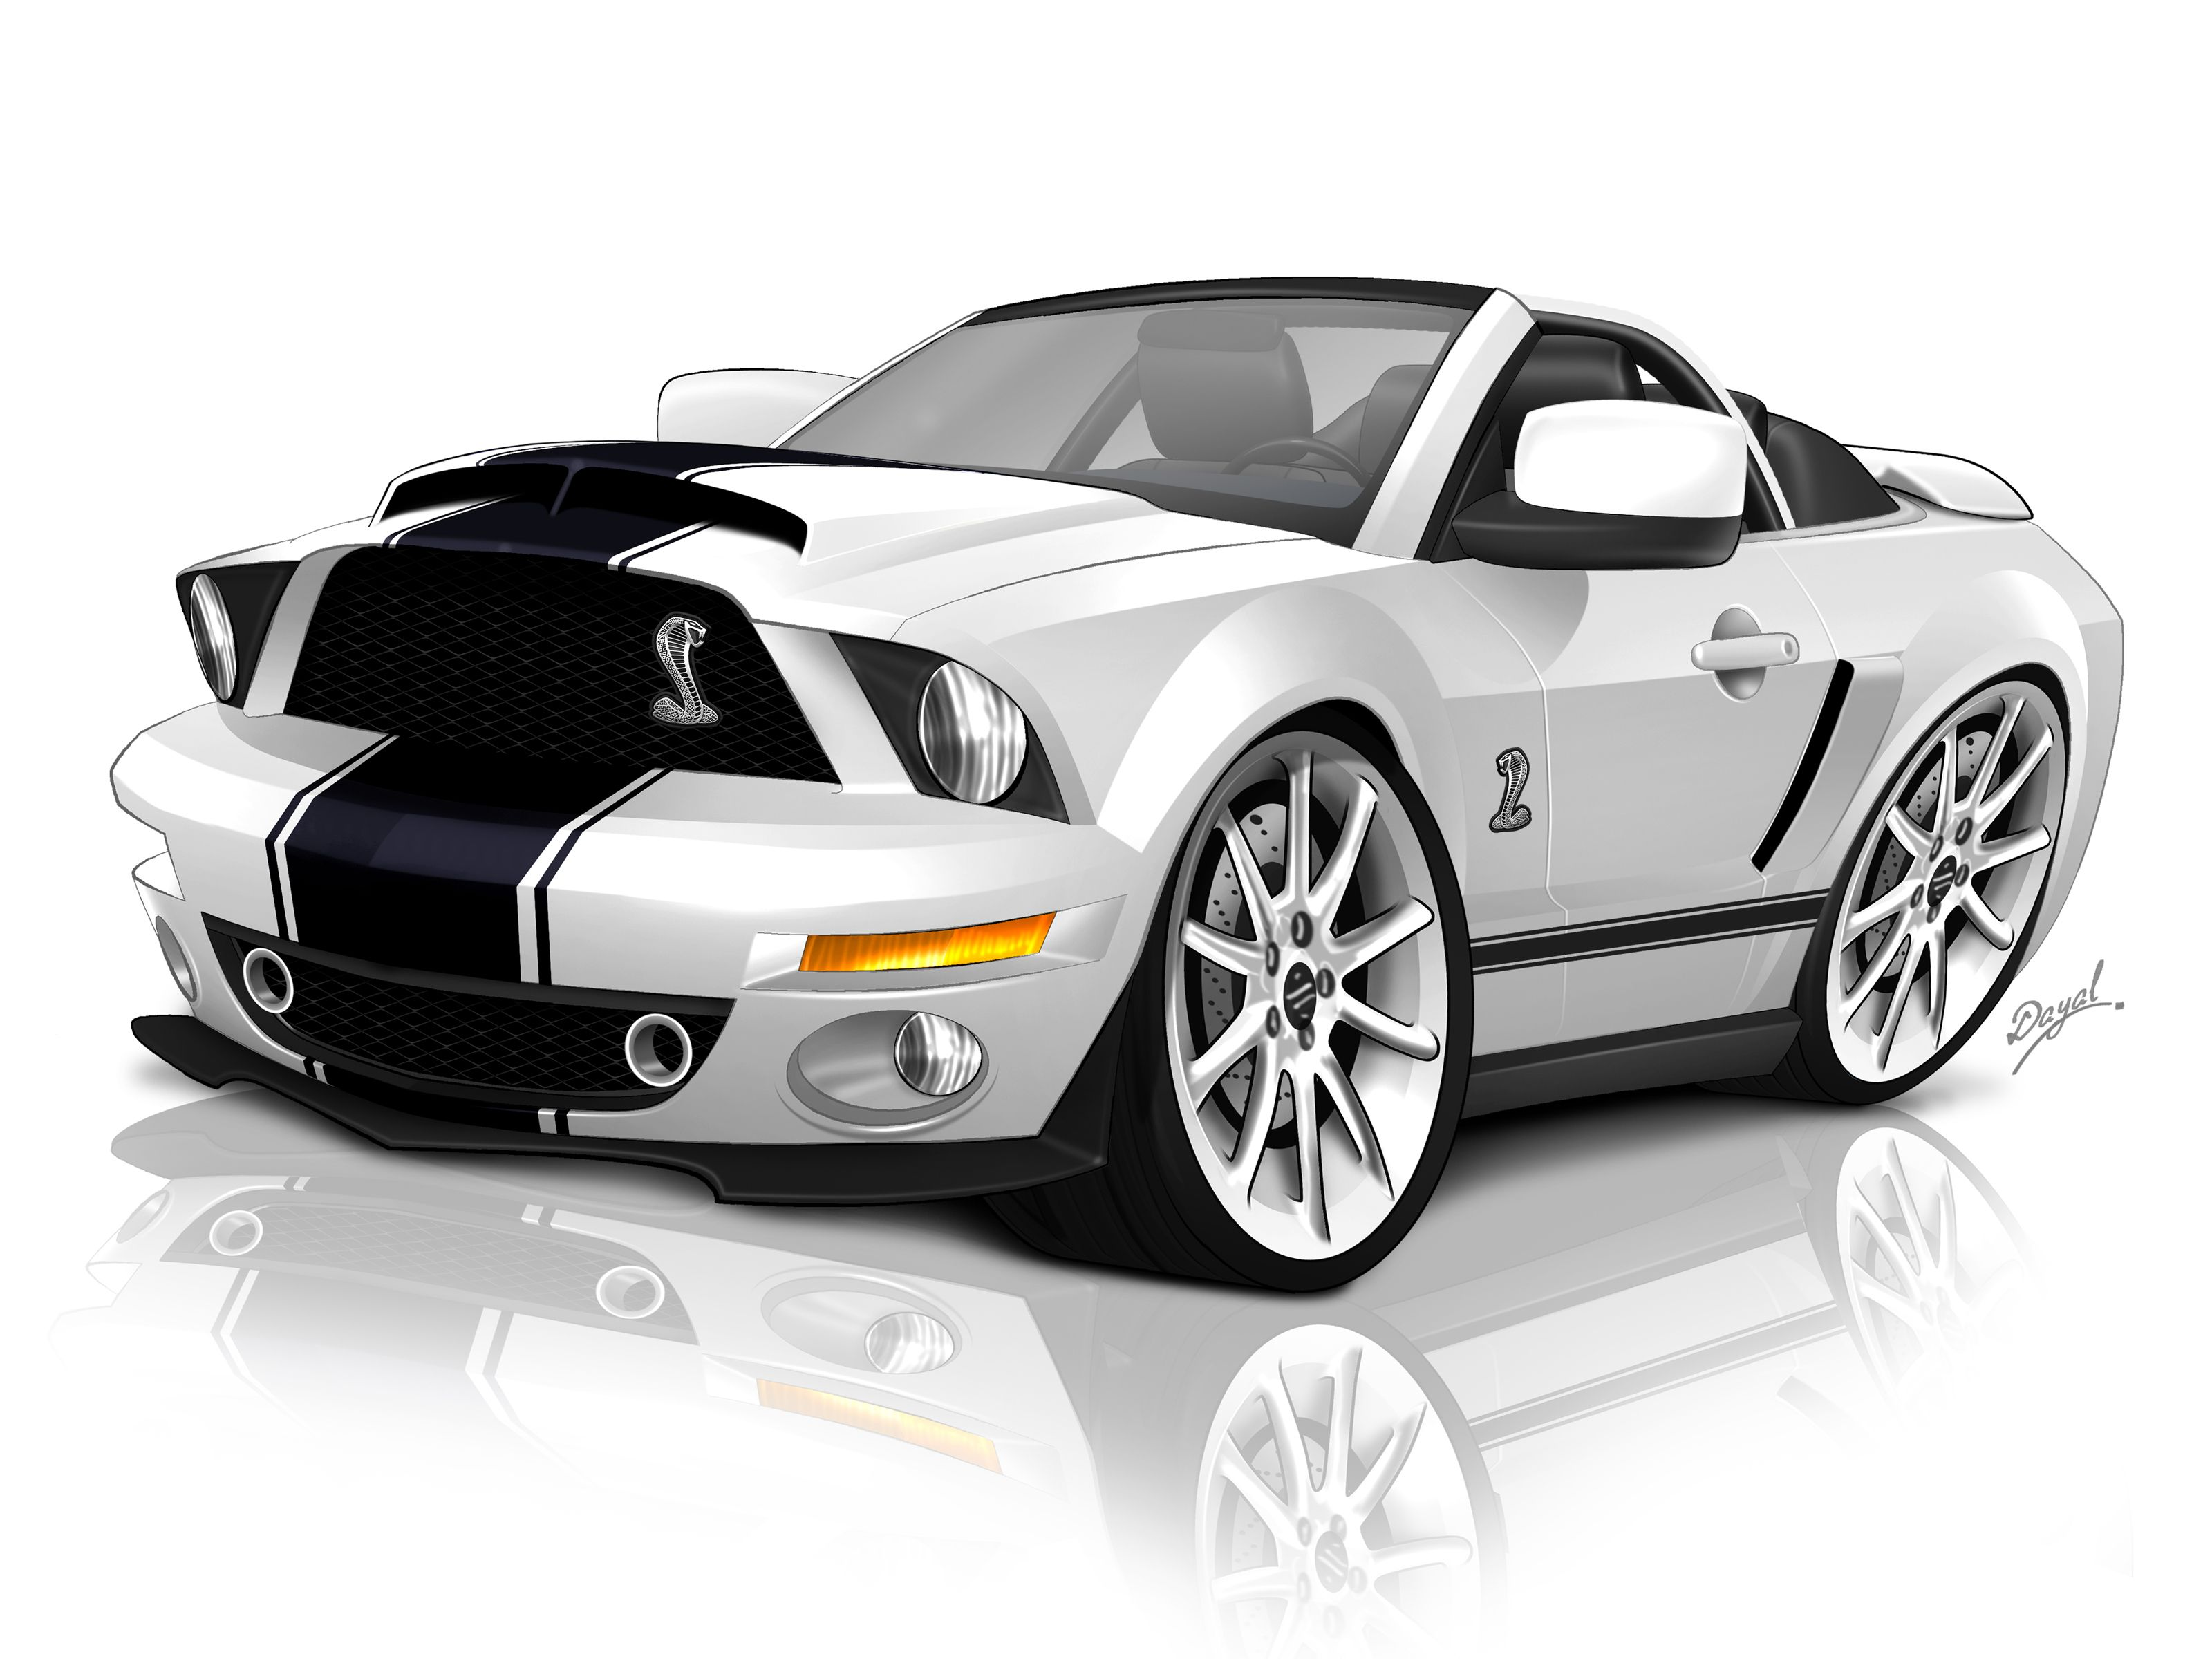 Race cars cartoon wallpapers high quality resolution for hd wallpaper desktop 3200x2400 px 1 69 mb